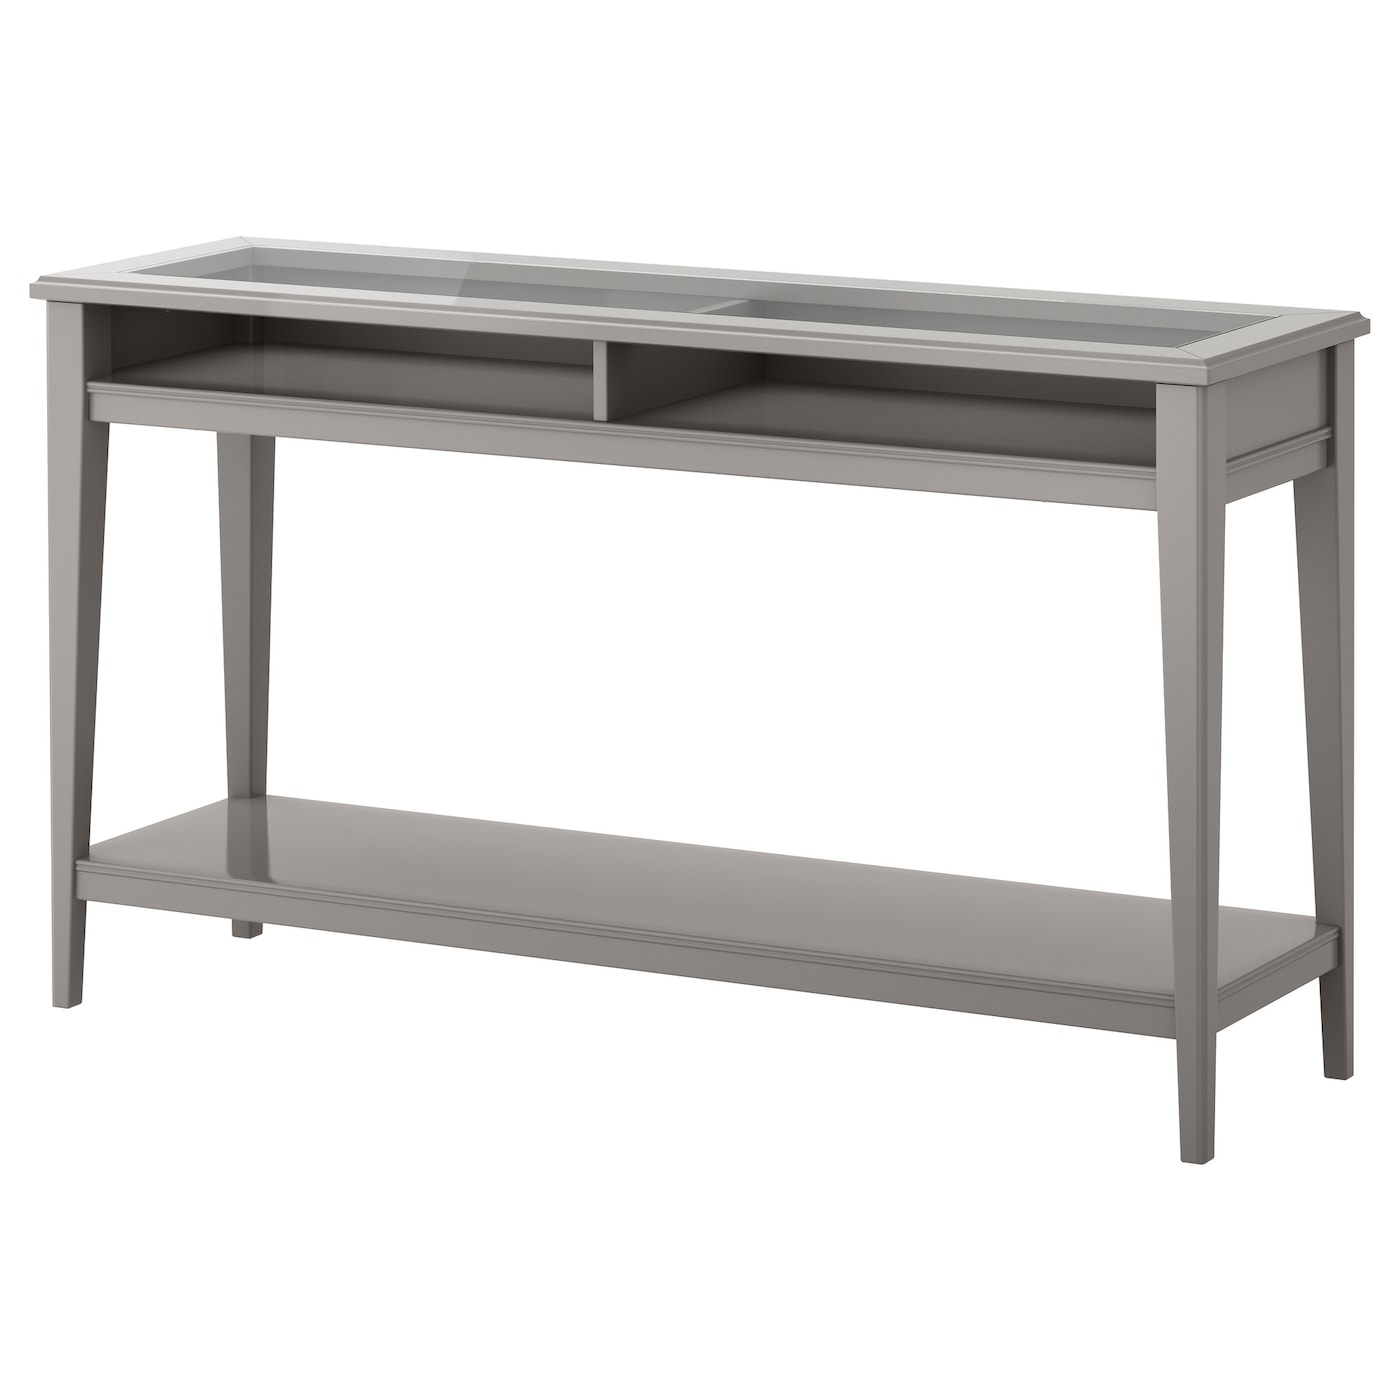 liatorp console table grey glass 133x37 cm ikea. Black Bedroom Furniture Sets. Home Design Ideas